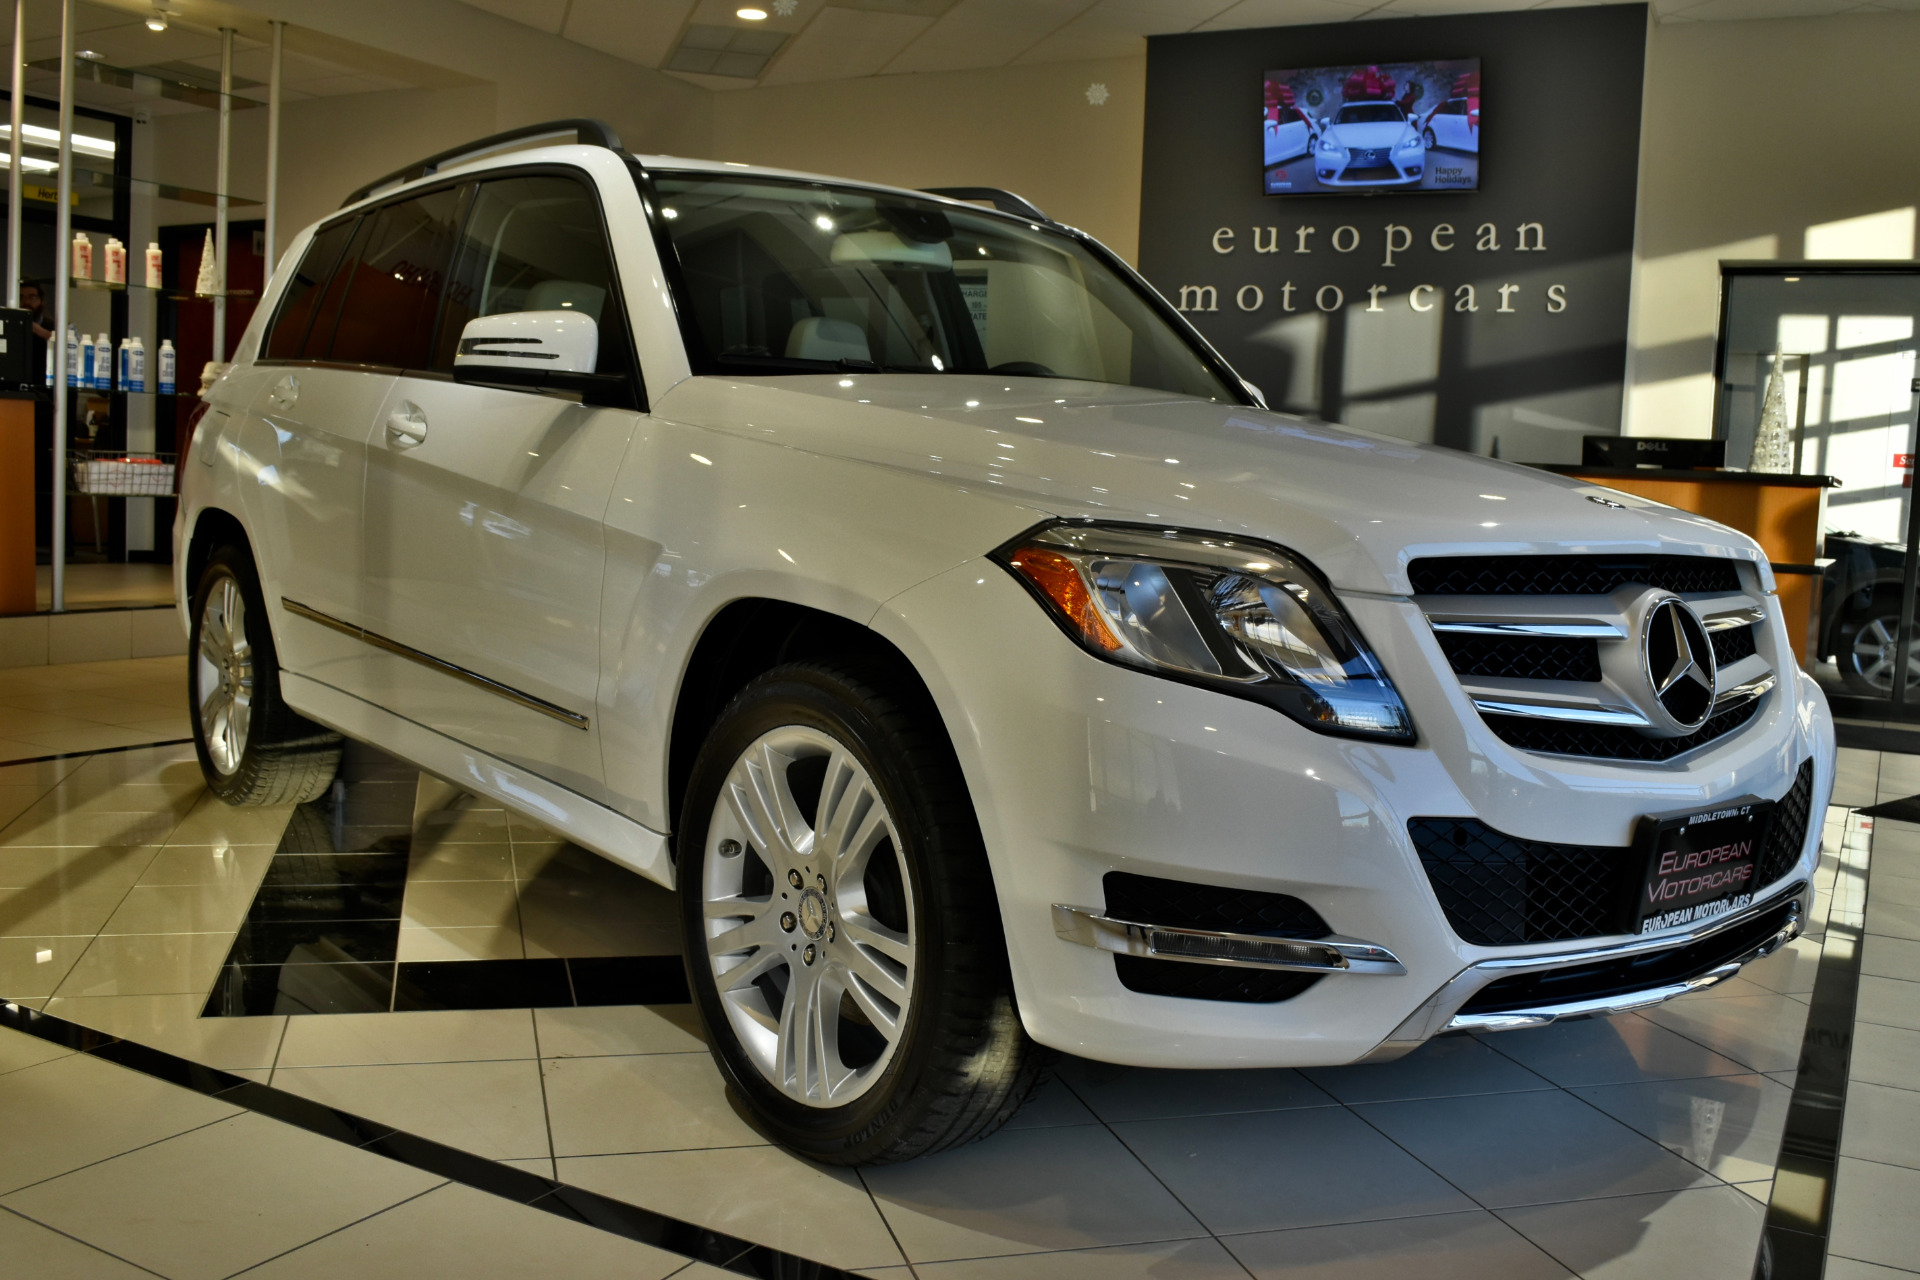 2014 mercedes benz glk glk250 bluetec for sale near for Euro motorcars mercedes benz